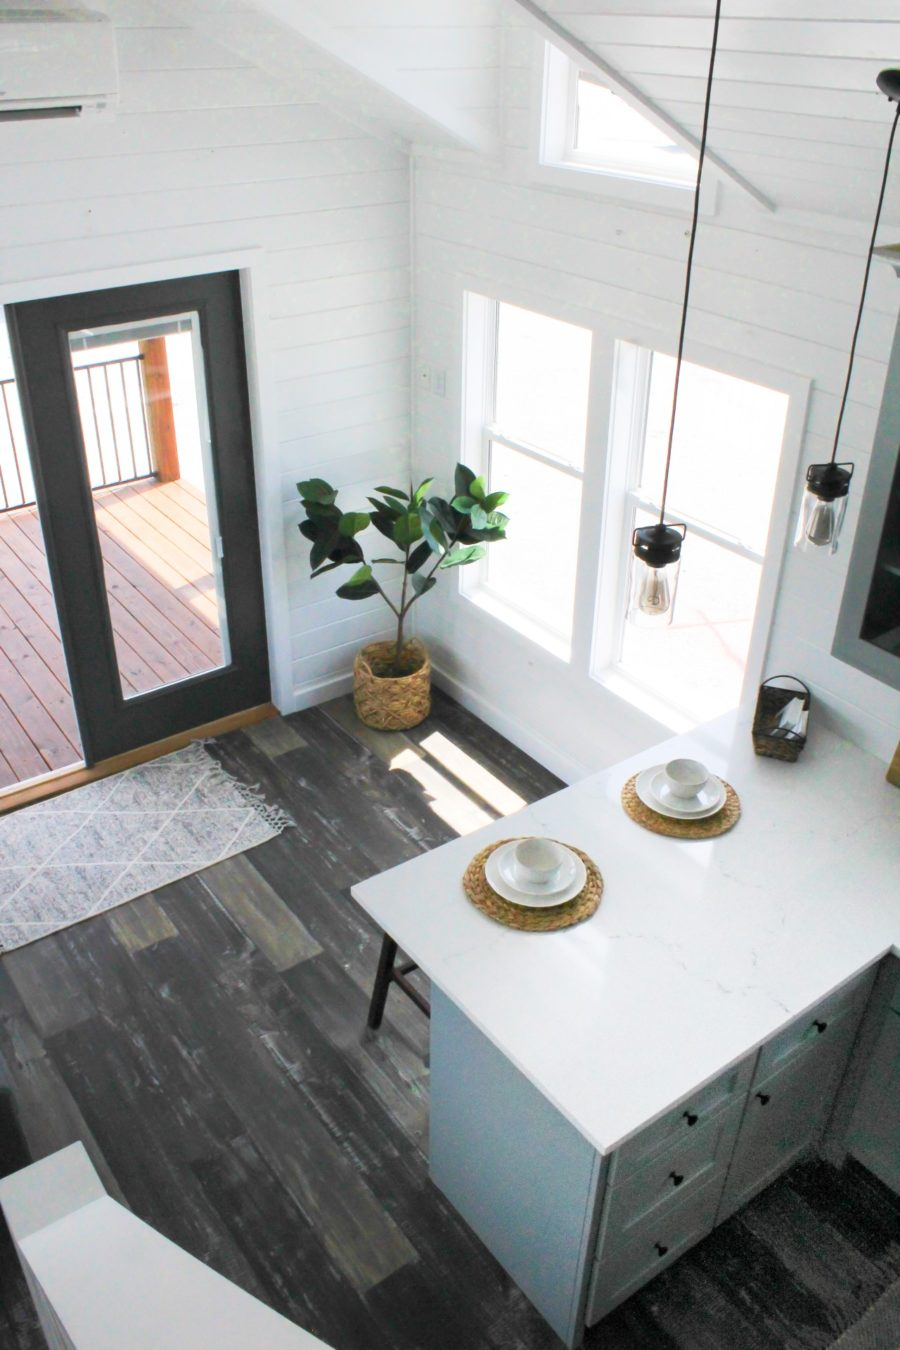 The-Zion-Tiny-House-Mustard-Seed-Tiny-Homes-Edition-13b